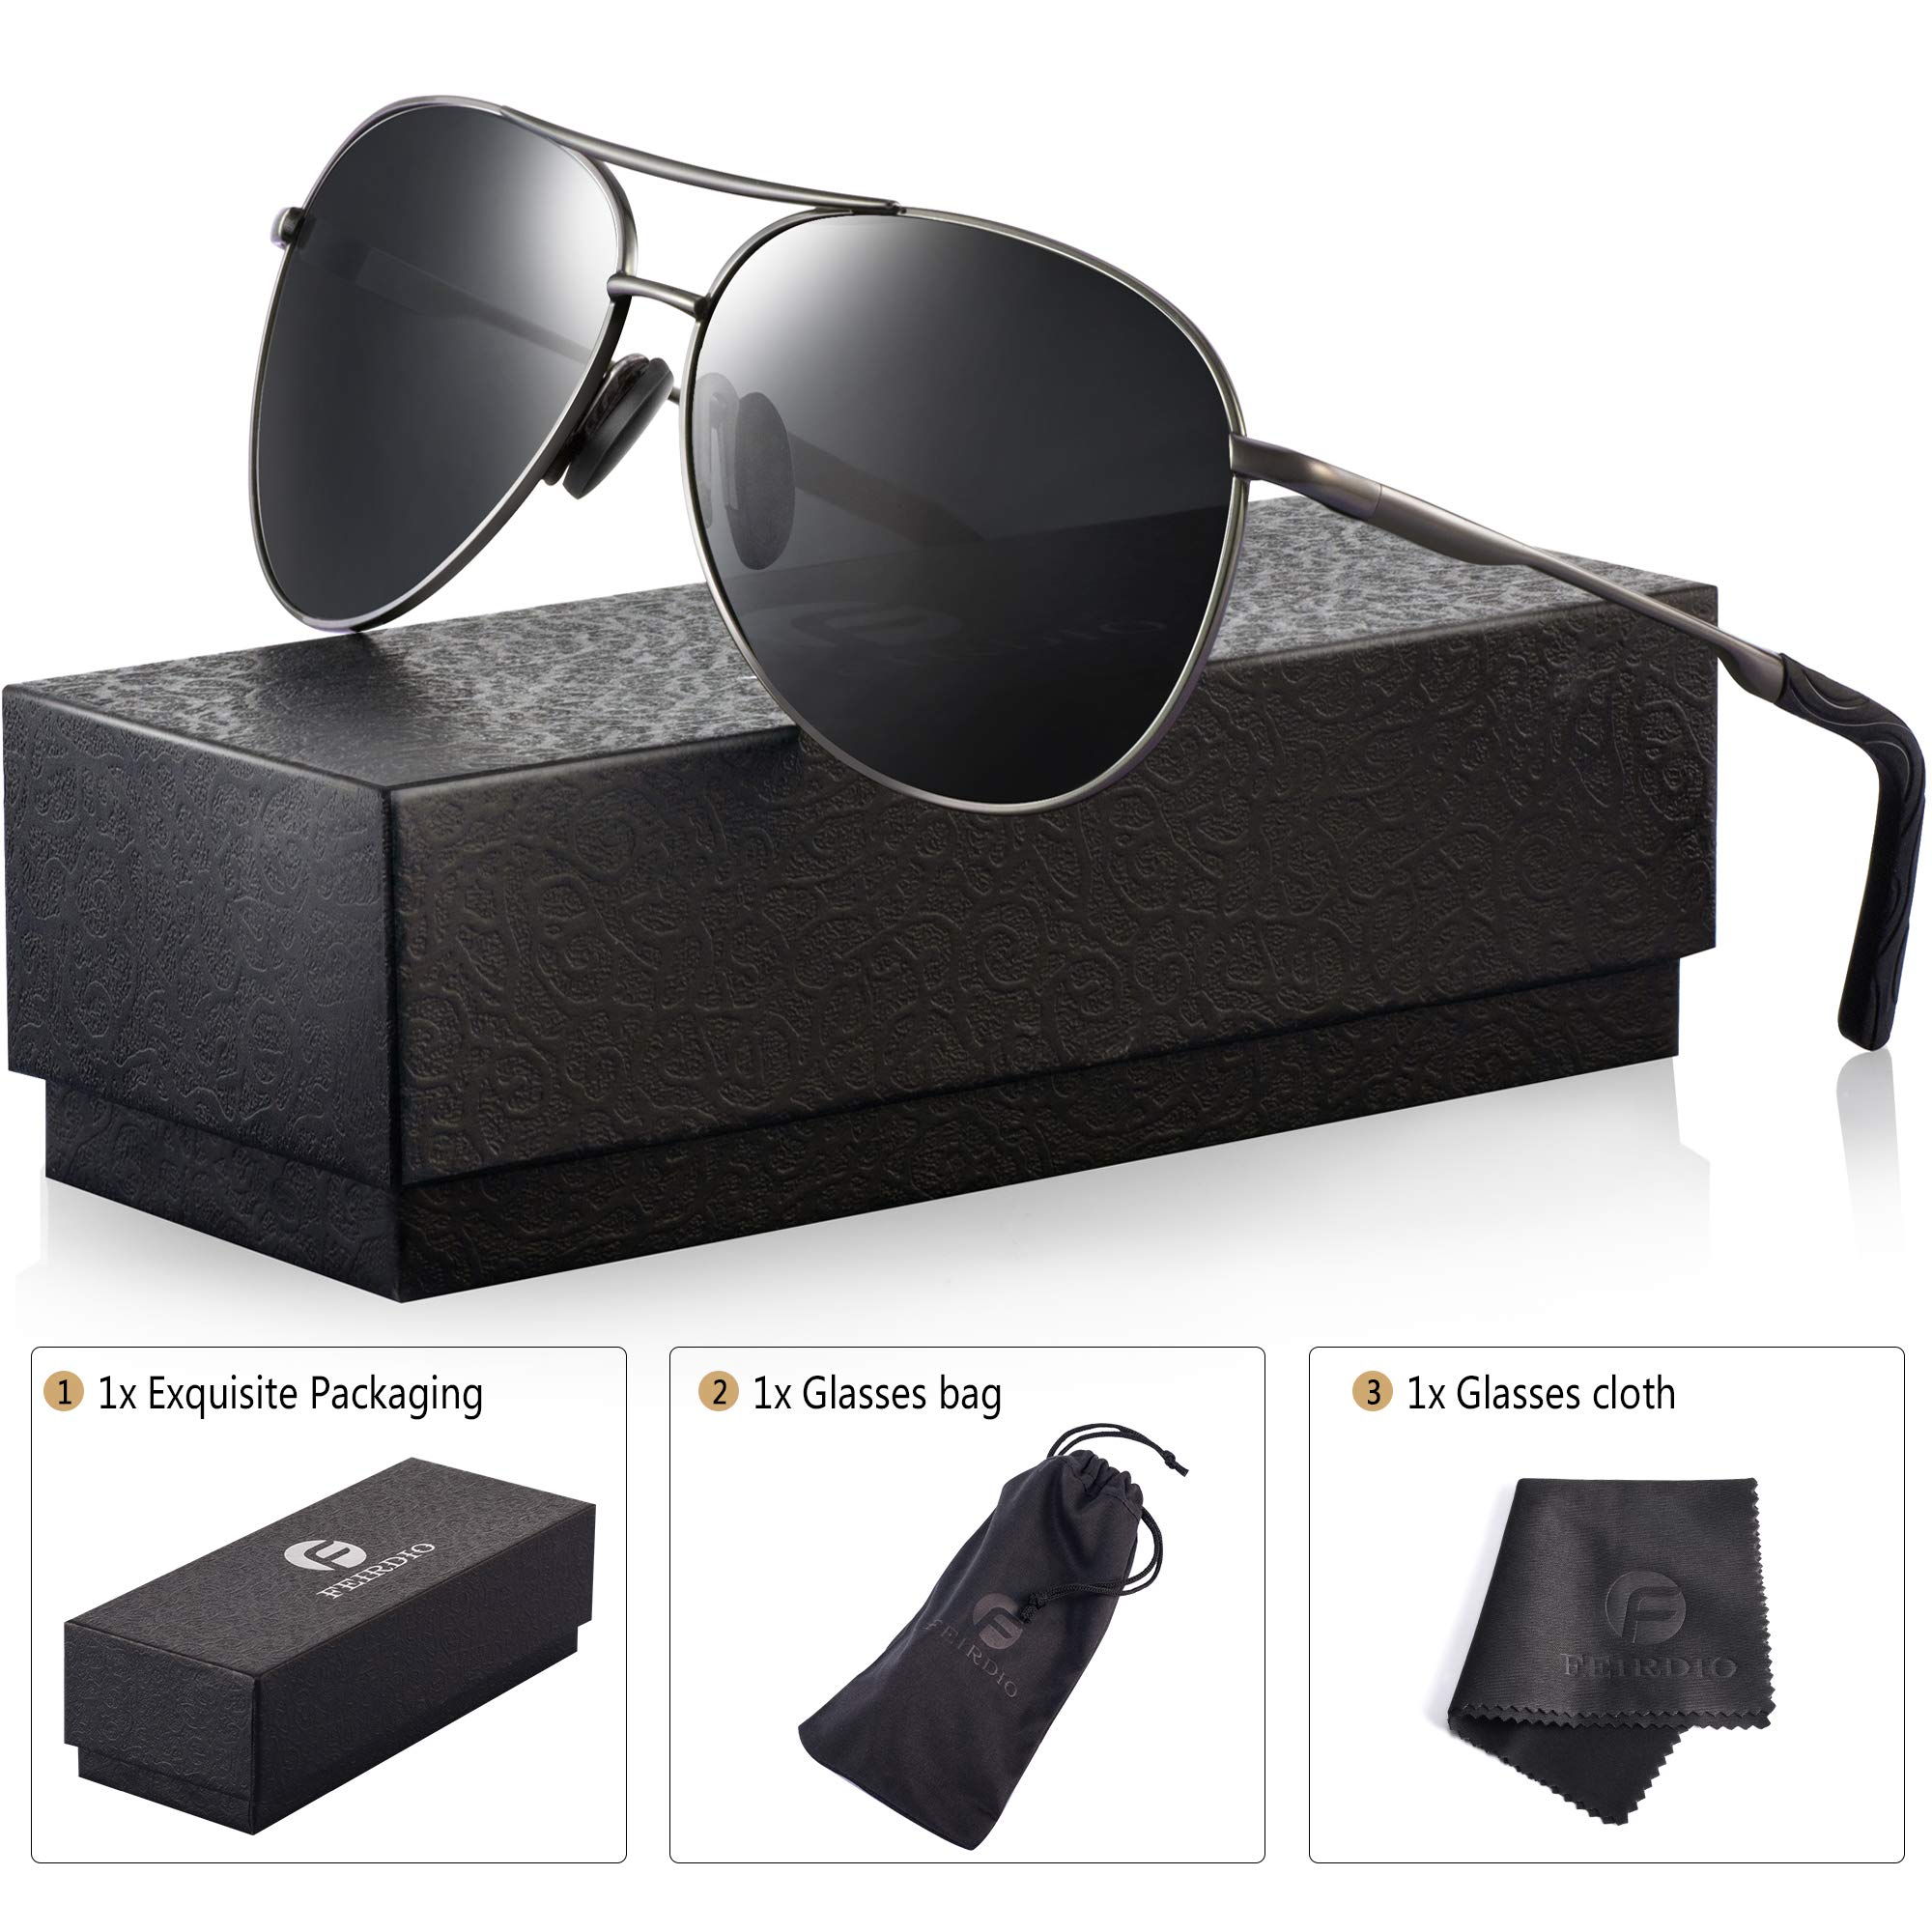 Polarized Aviator Sunglasses for Men - Feirdio Metal Frame Sports UV 400 Protection Mens Unisex Sunglasses 2261 (black/Gun, 2.36)